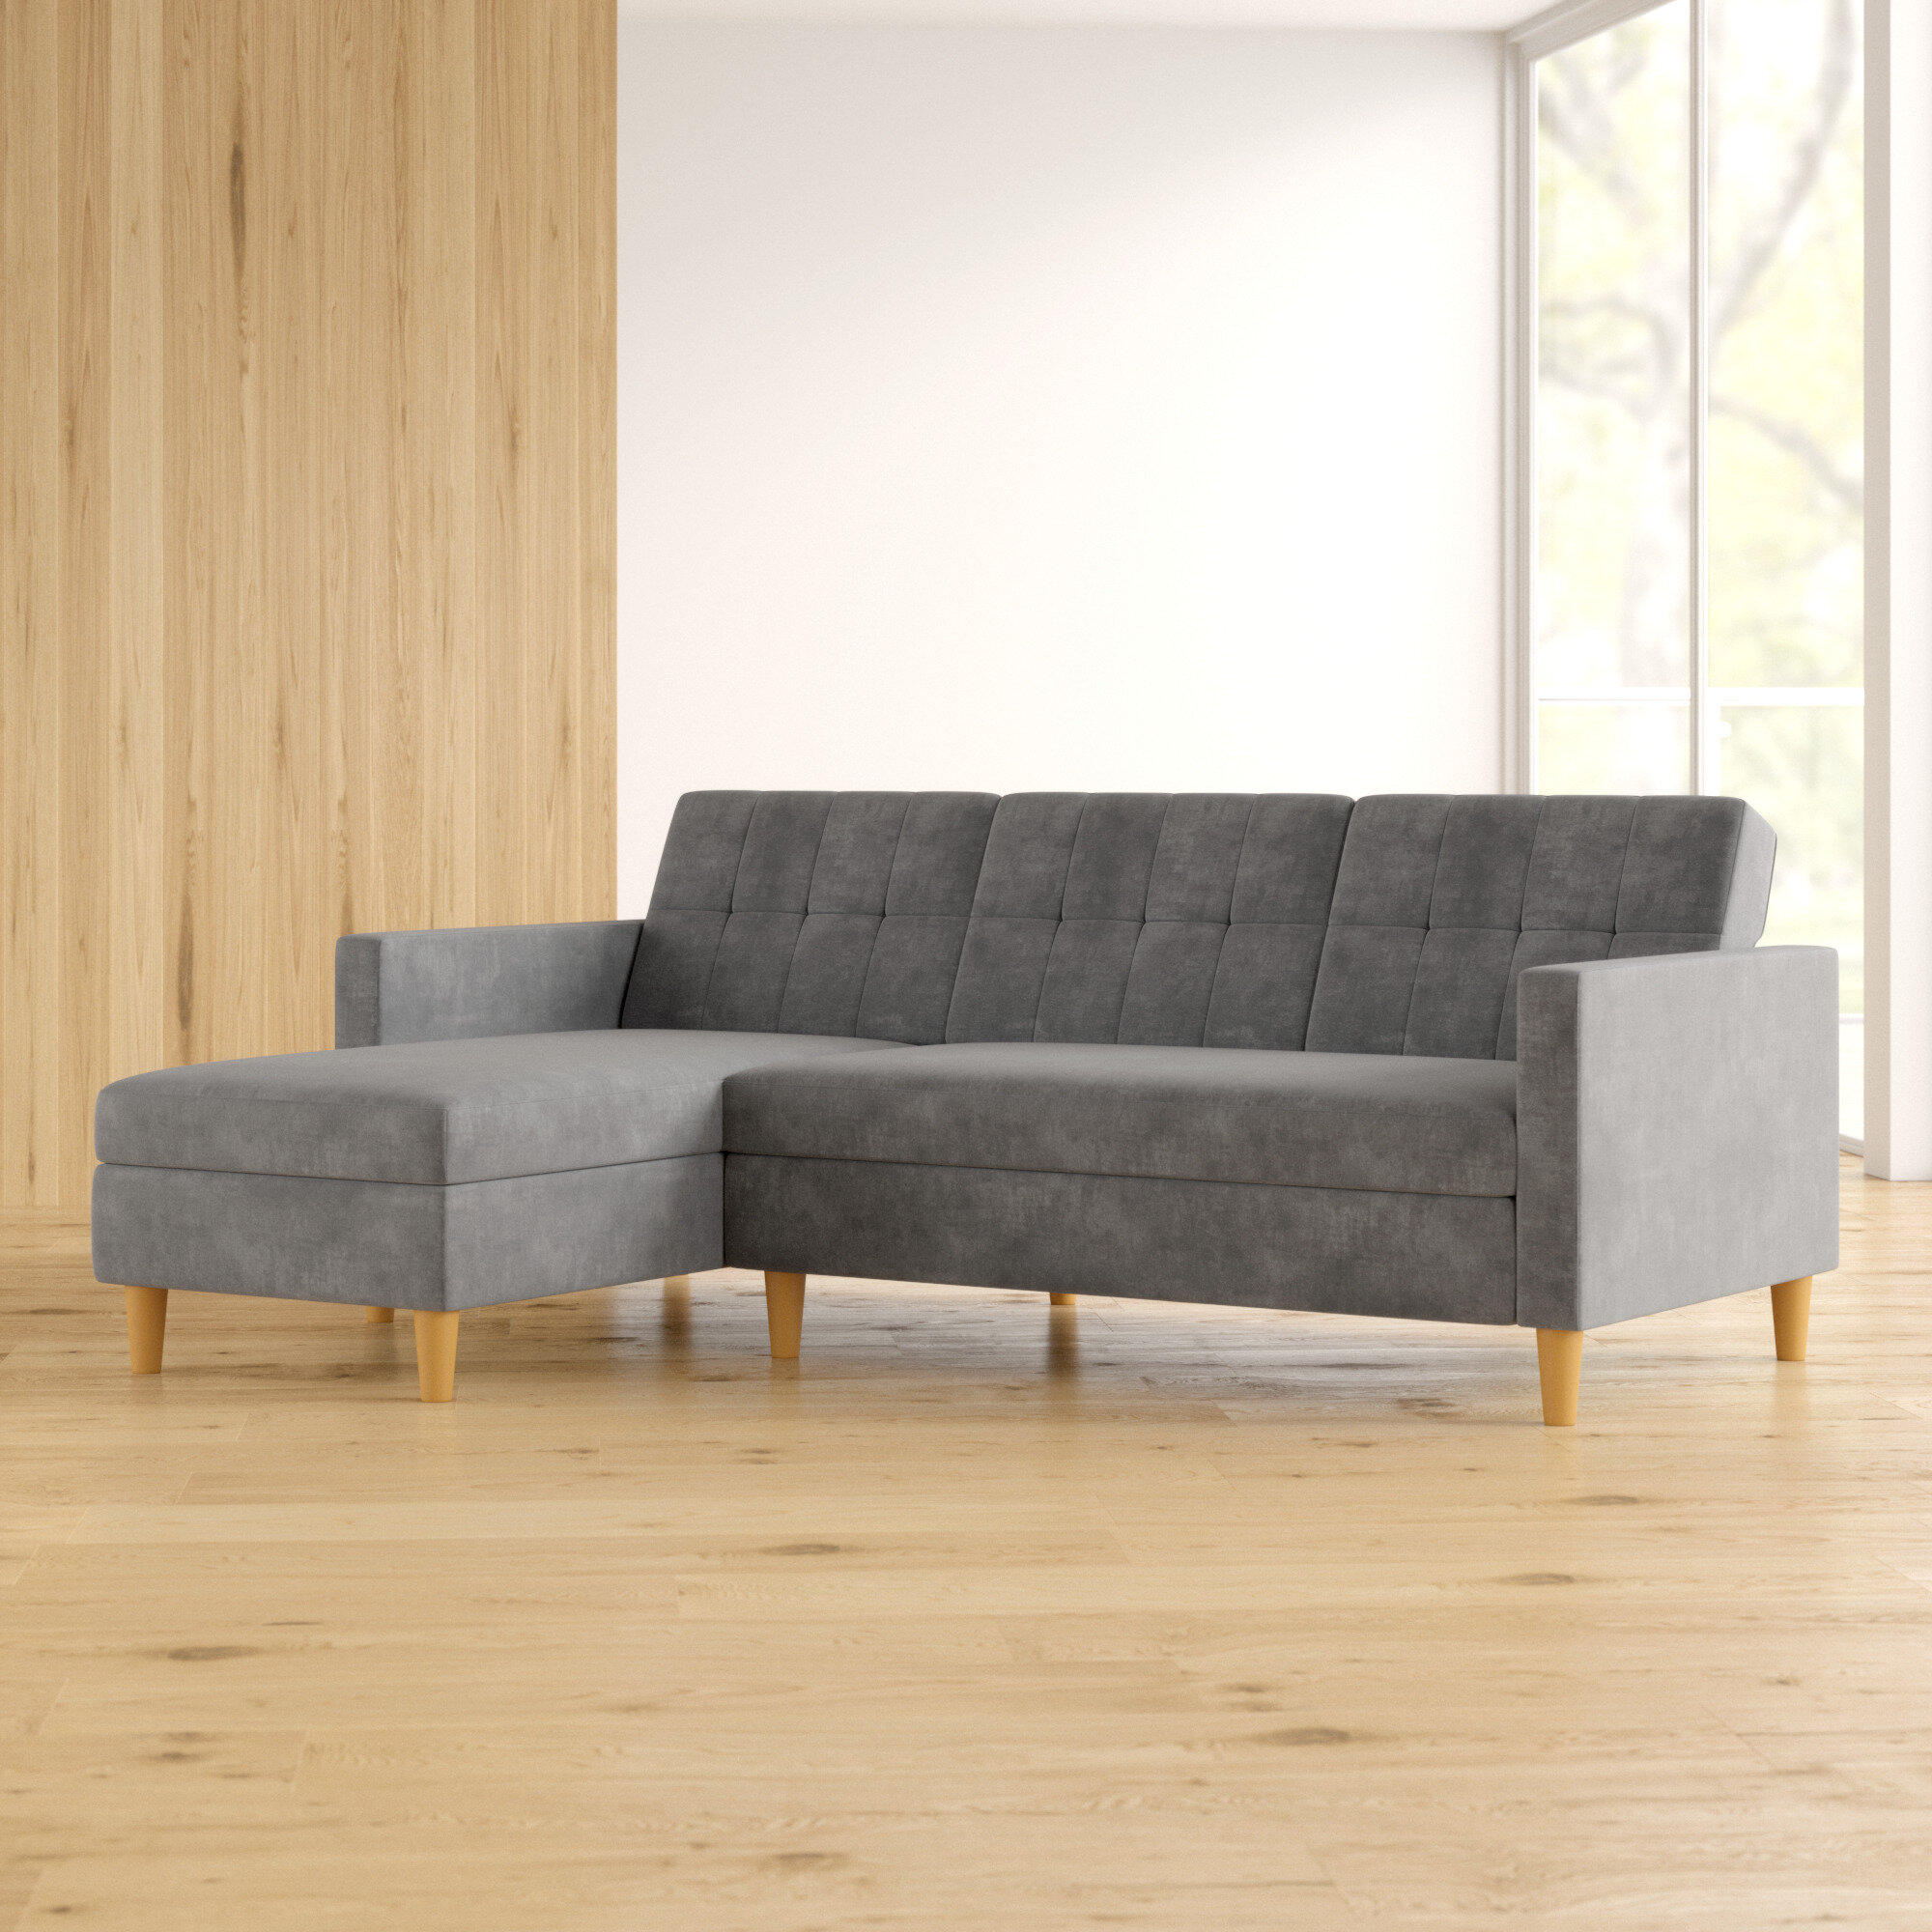 Image of: Mid Century Modern Sectionals You Ll Love In 2020 Wayfair